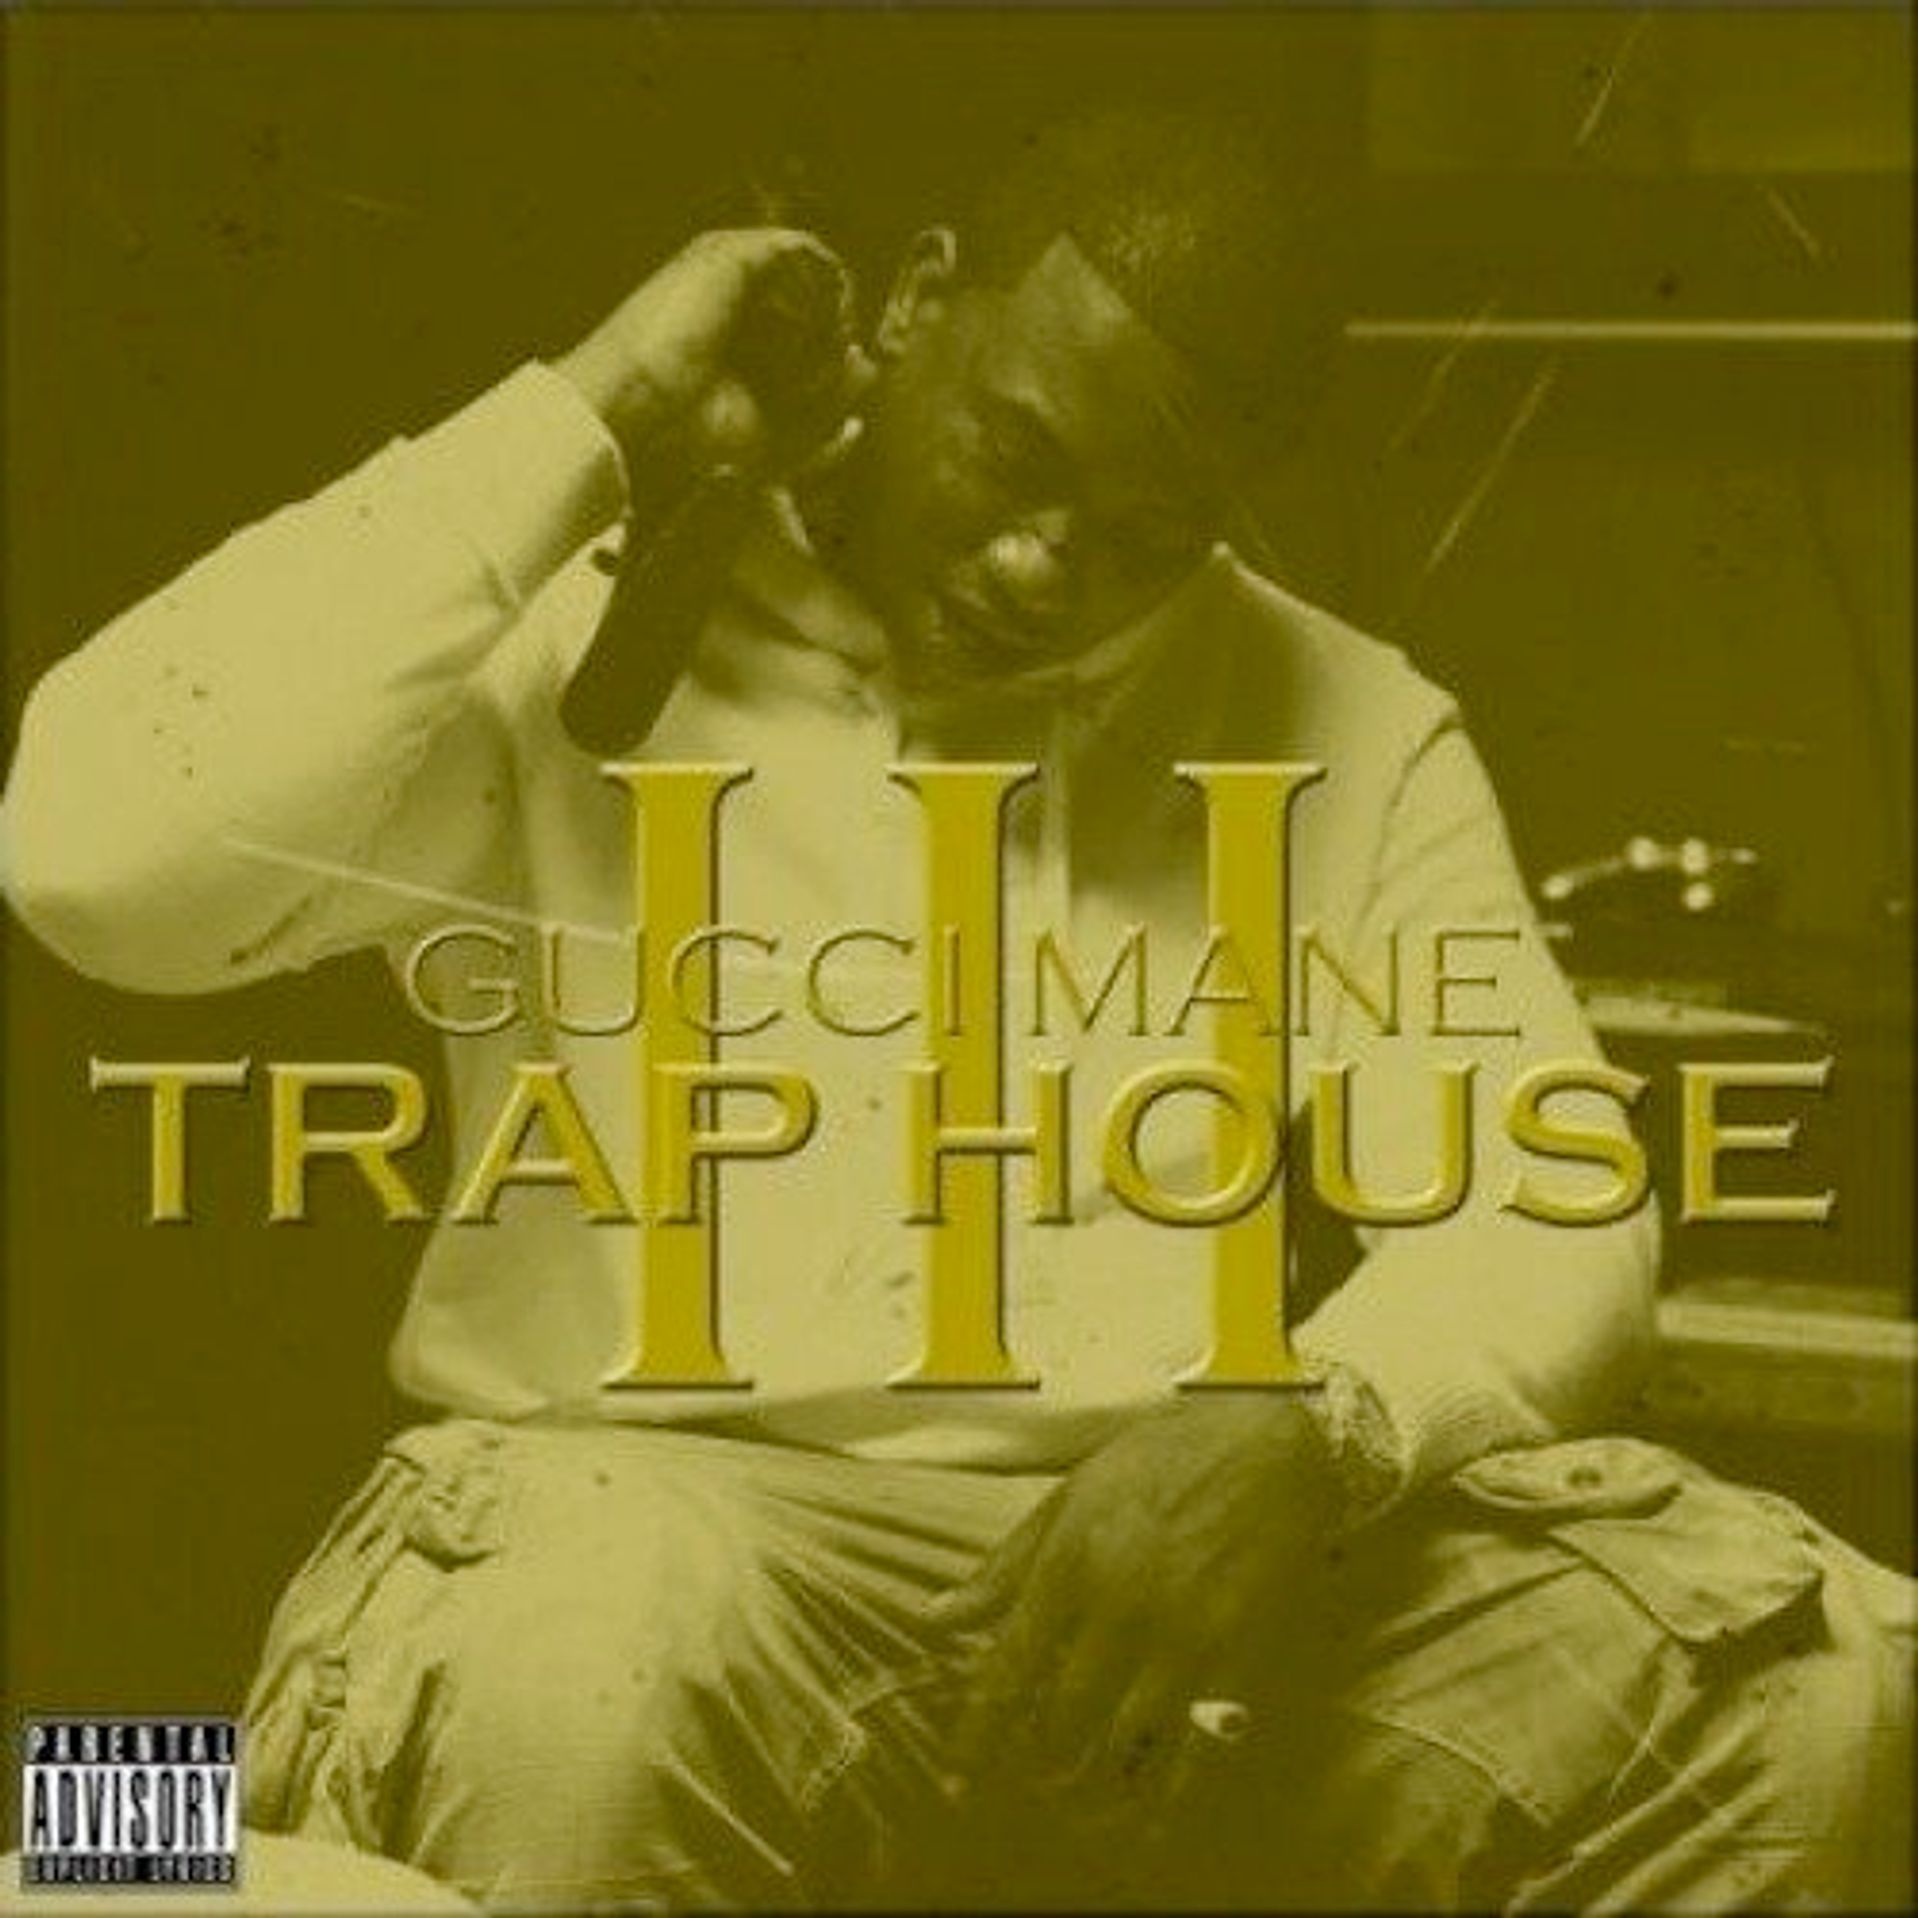 Album Title: Trap House III by: Gucci Mane